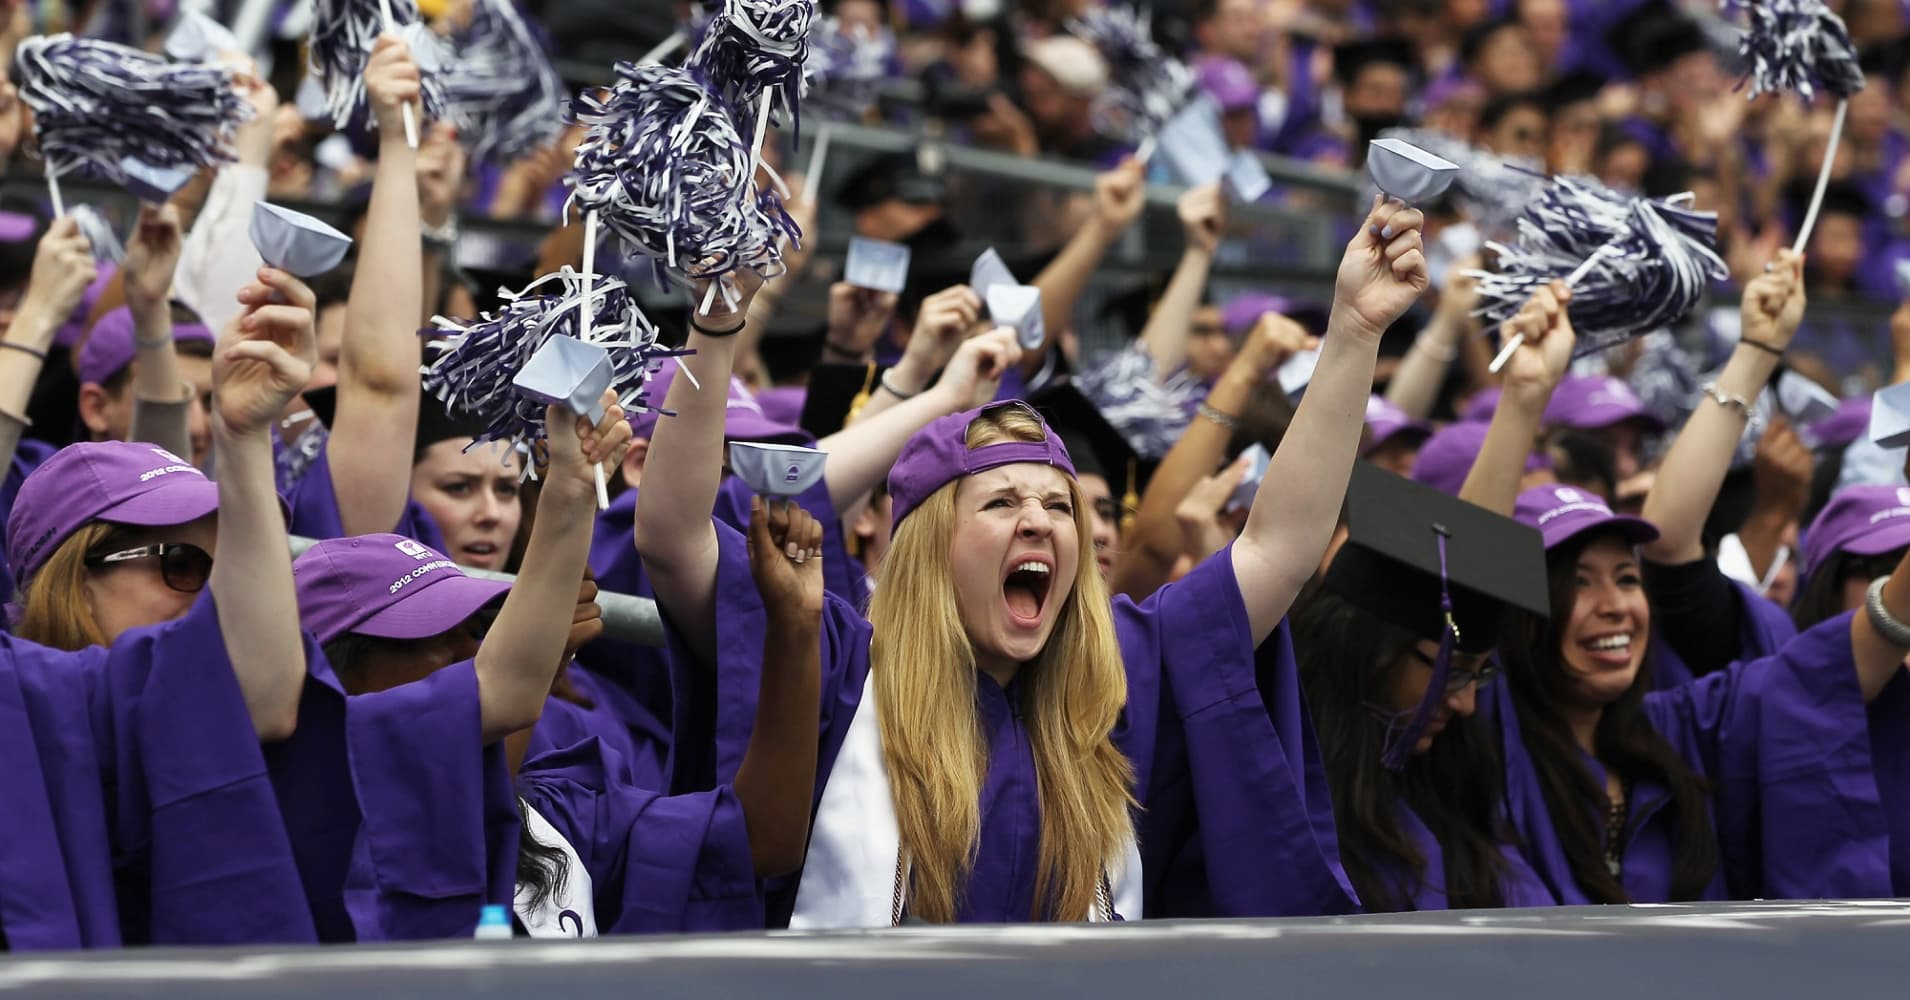 Graduating students cheer at New York University's commencement ceremony at Yankee Stadium.